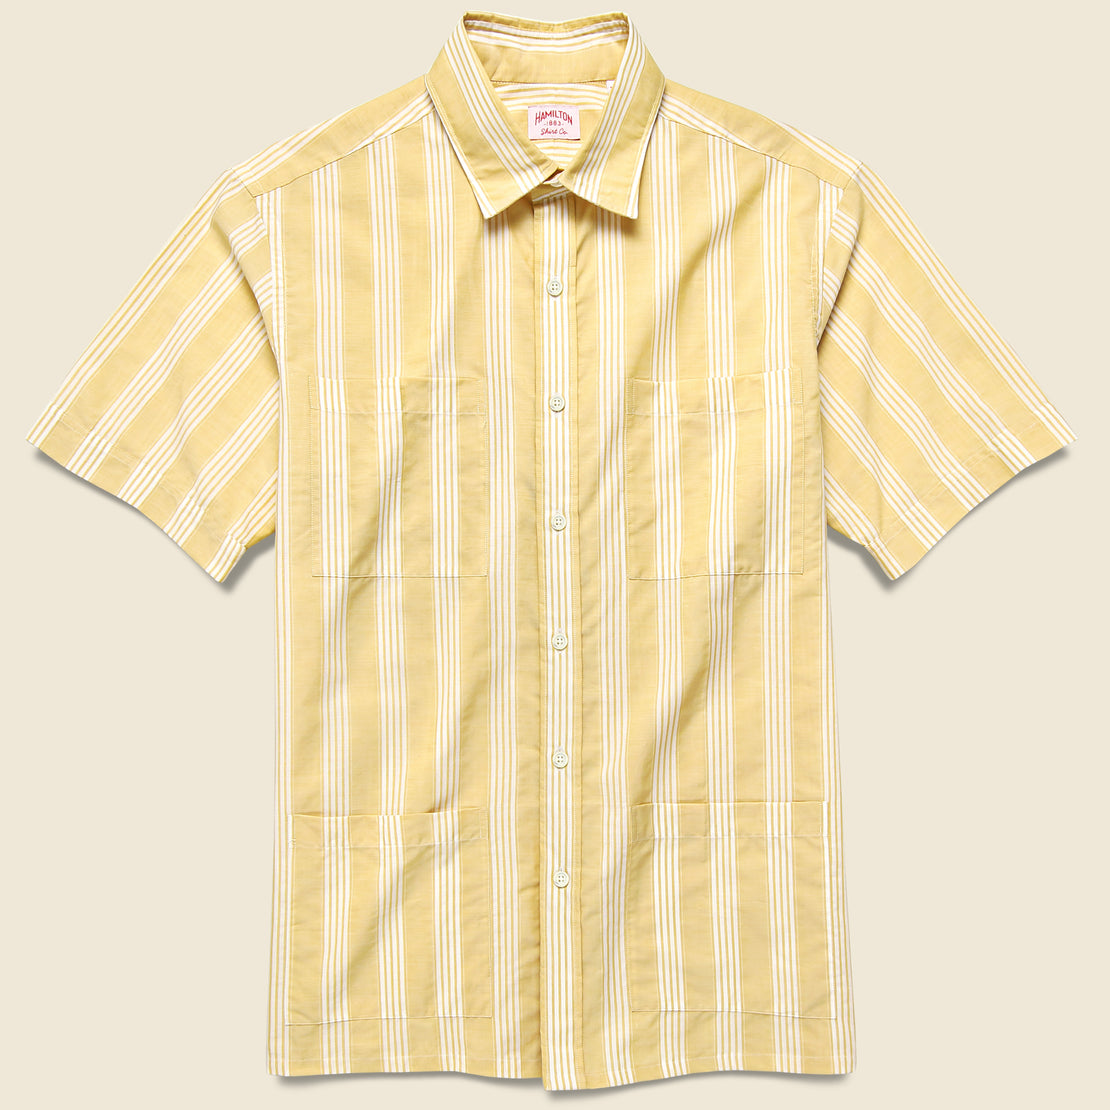 Hamilton Shirt Co. Textured Stripe Guayabera Shirt - Dusty Marigold/White